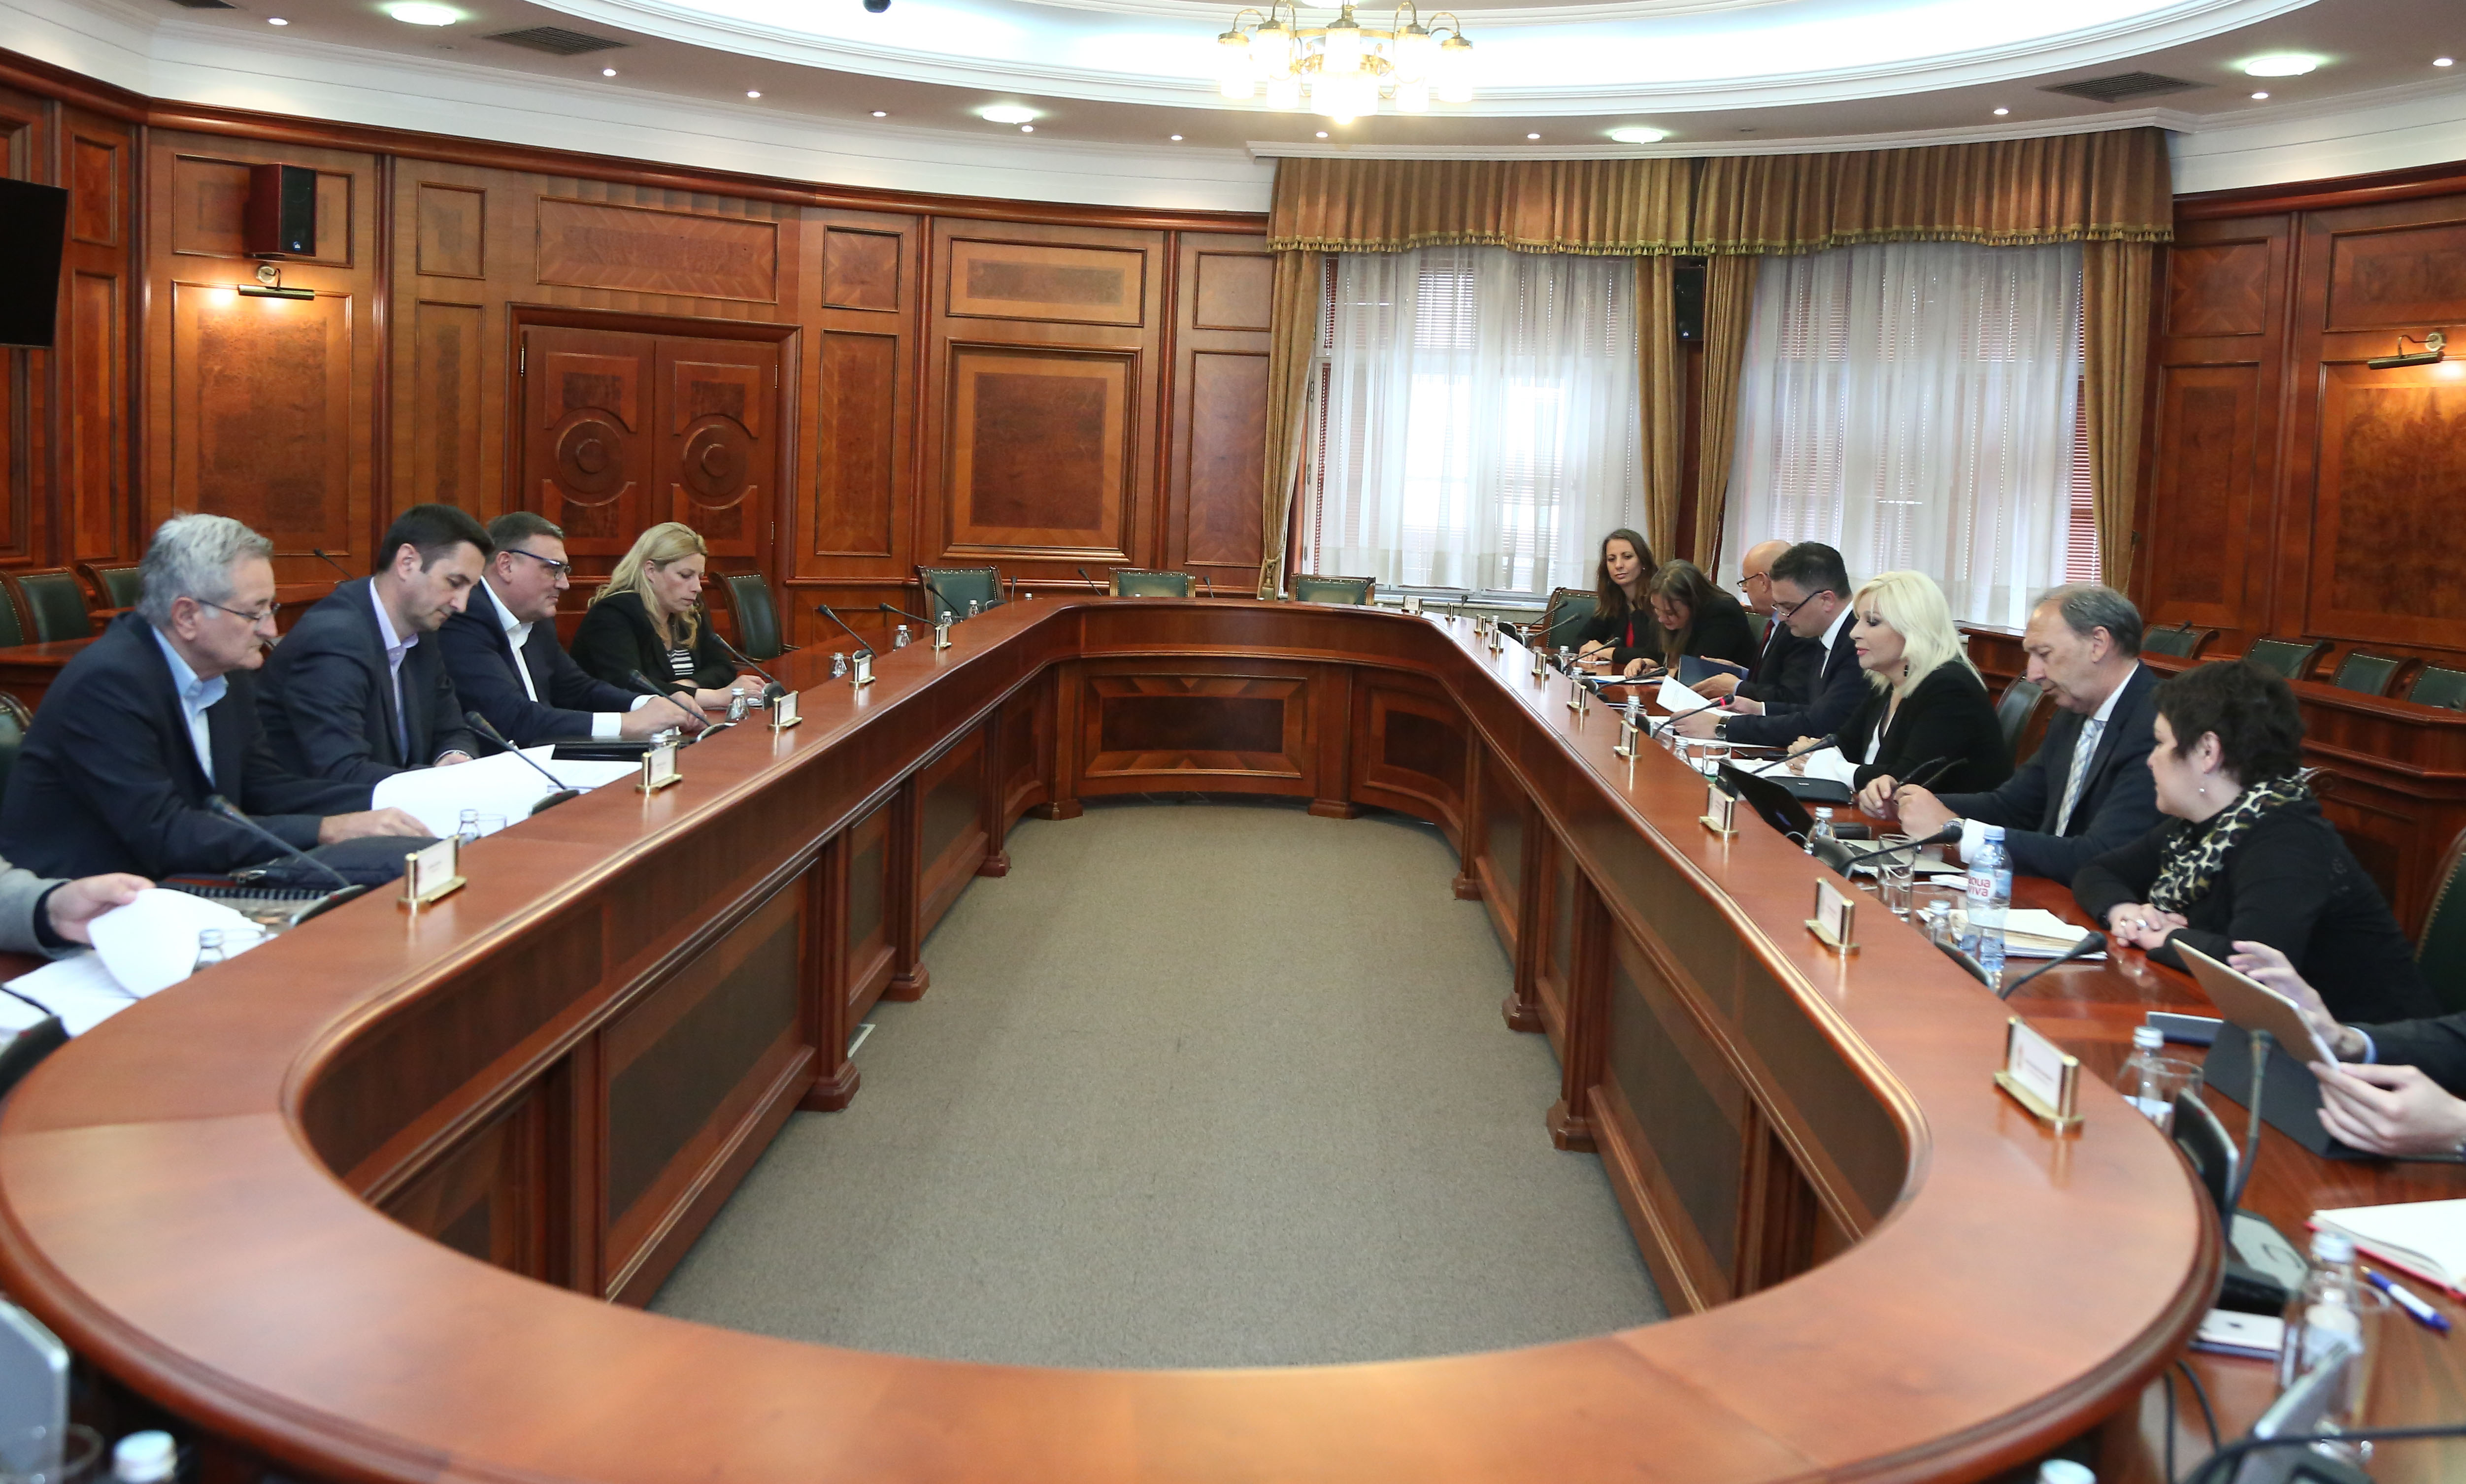 Mihajlovic on road sector reform: We want efficient and